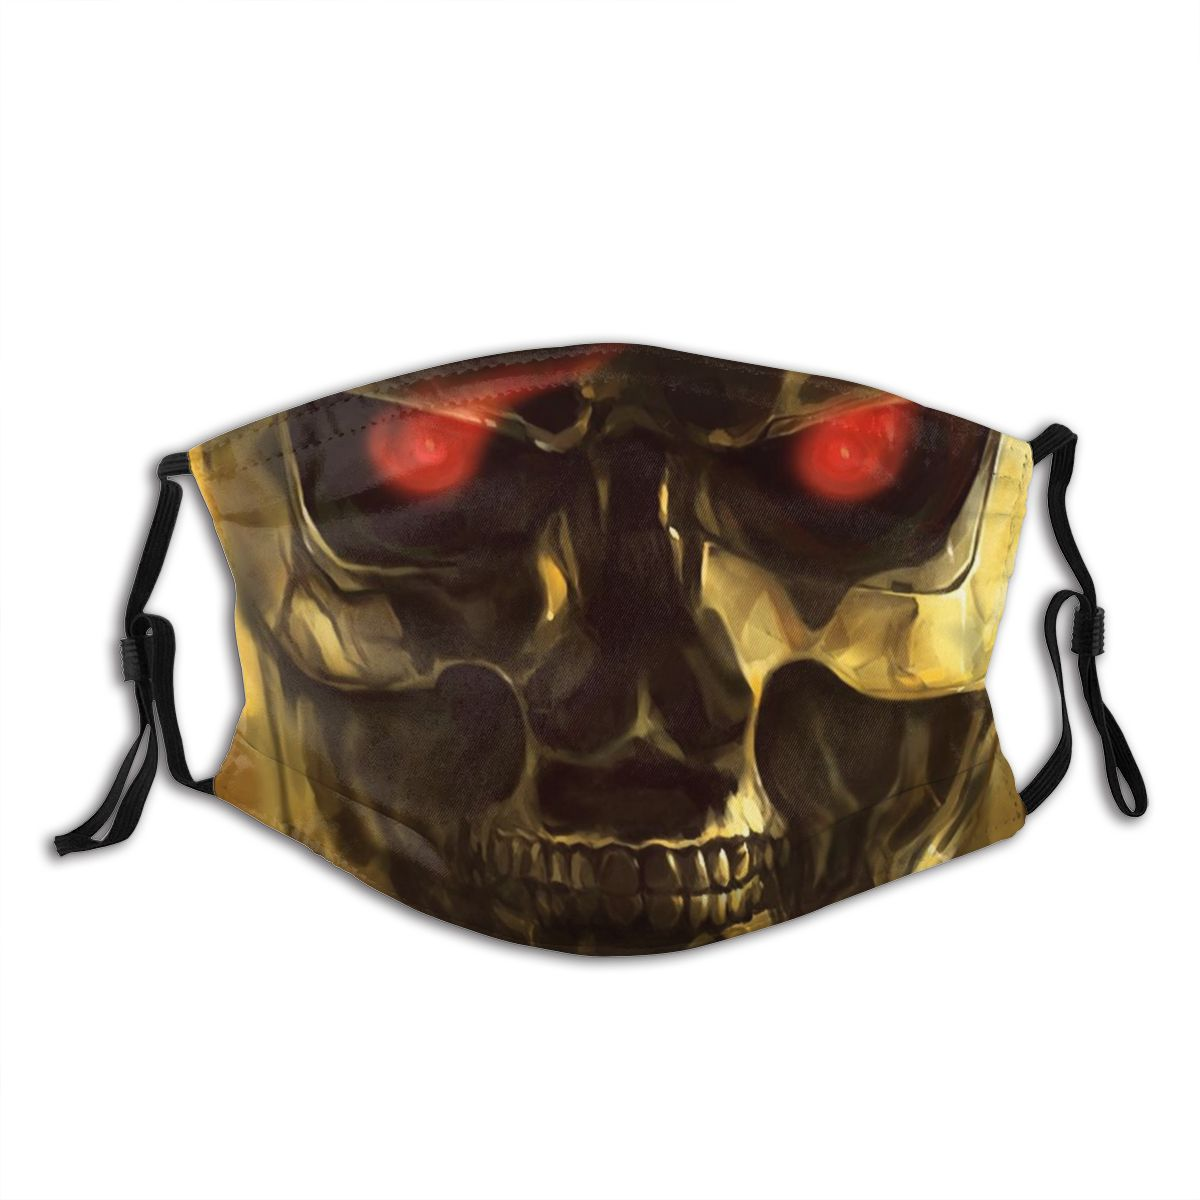 Terminator Unisex Non-Disposable Face Mask Anti Haze Dustproof Mask With Filters Protection Cover Respirator Mouth Muffle